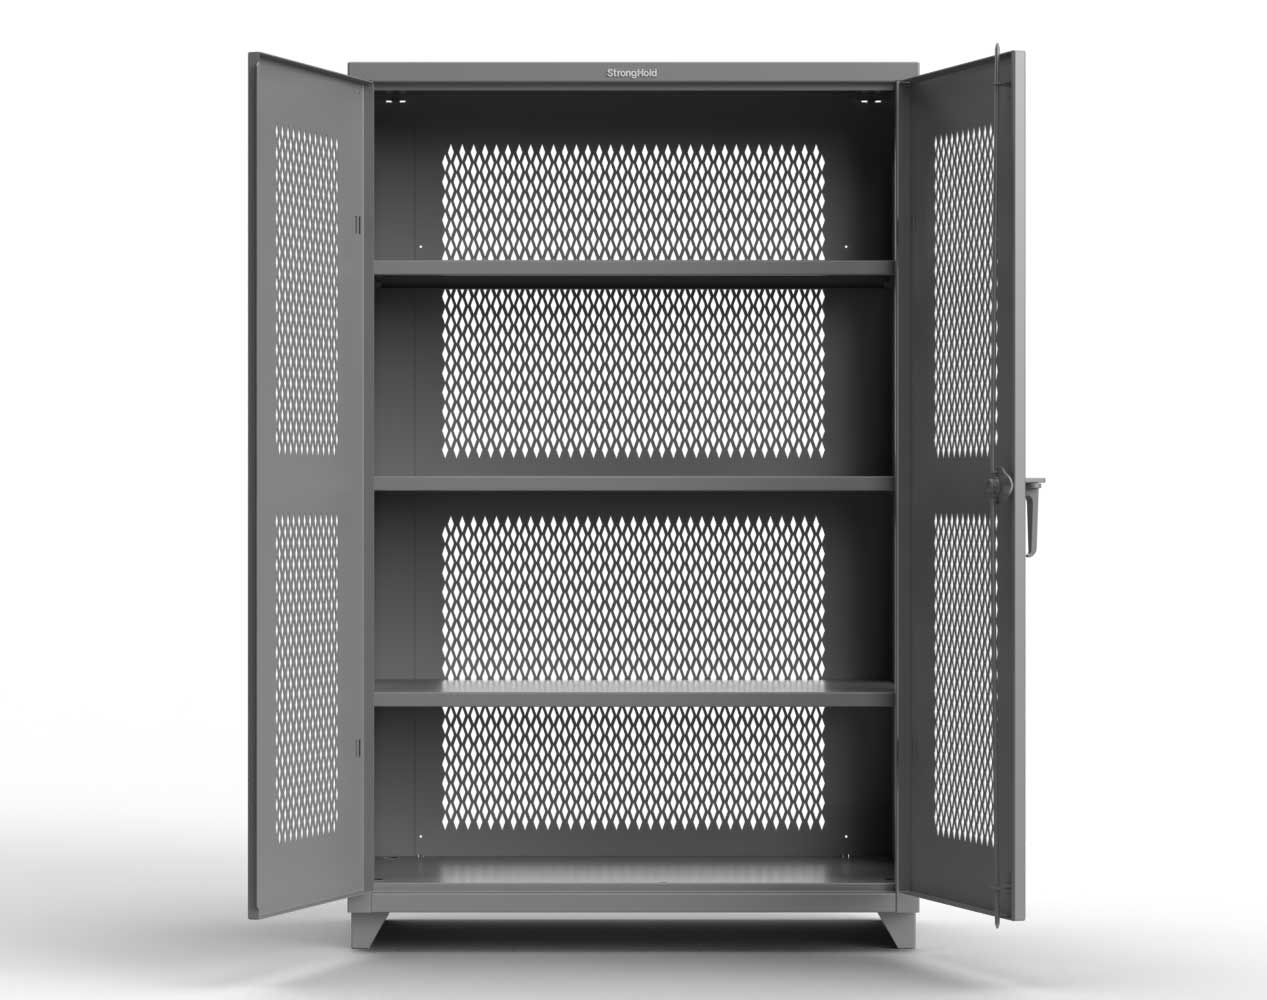 Extra Heavy Duty 14 GA Fully-Ventilated Cabinet with 3 Shelves – 48 In. W x 24 In. D x 75 In. H